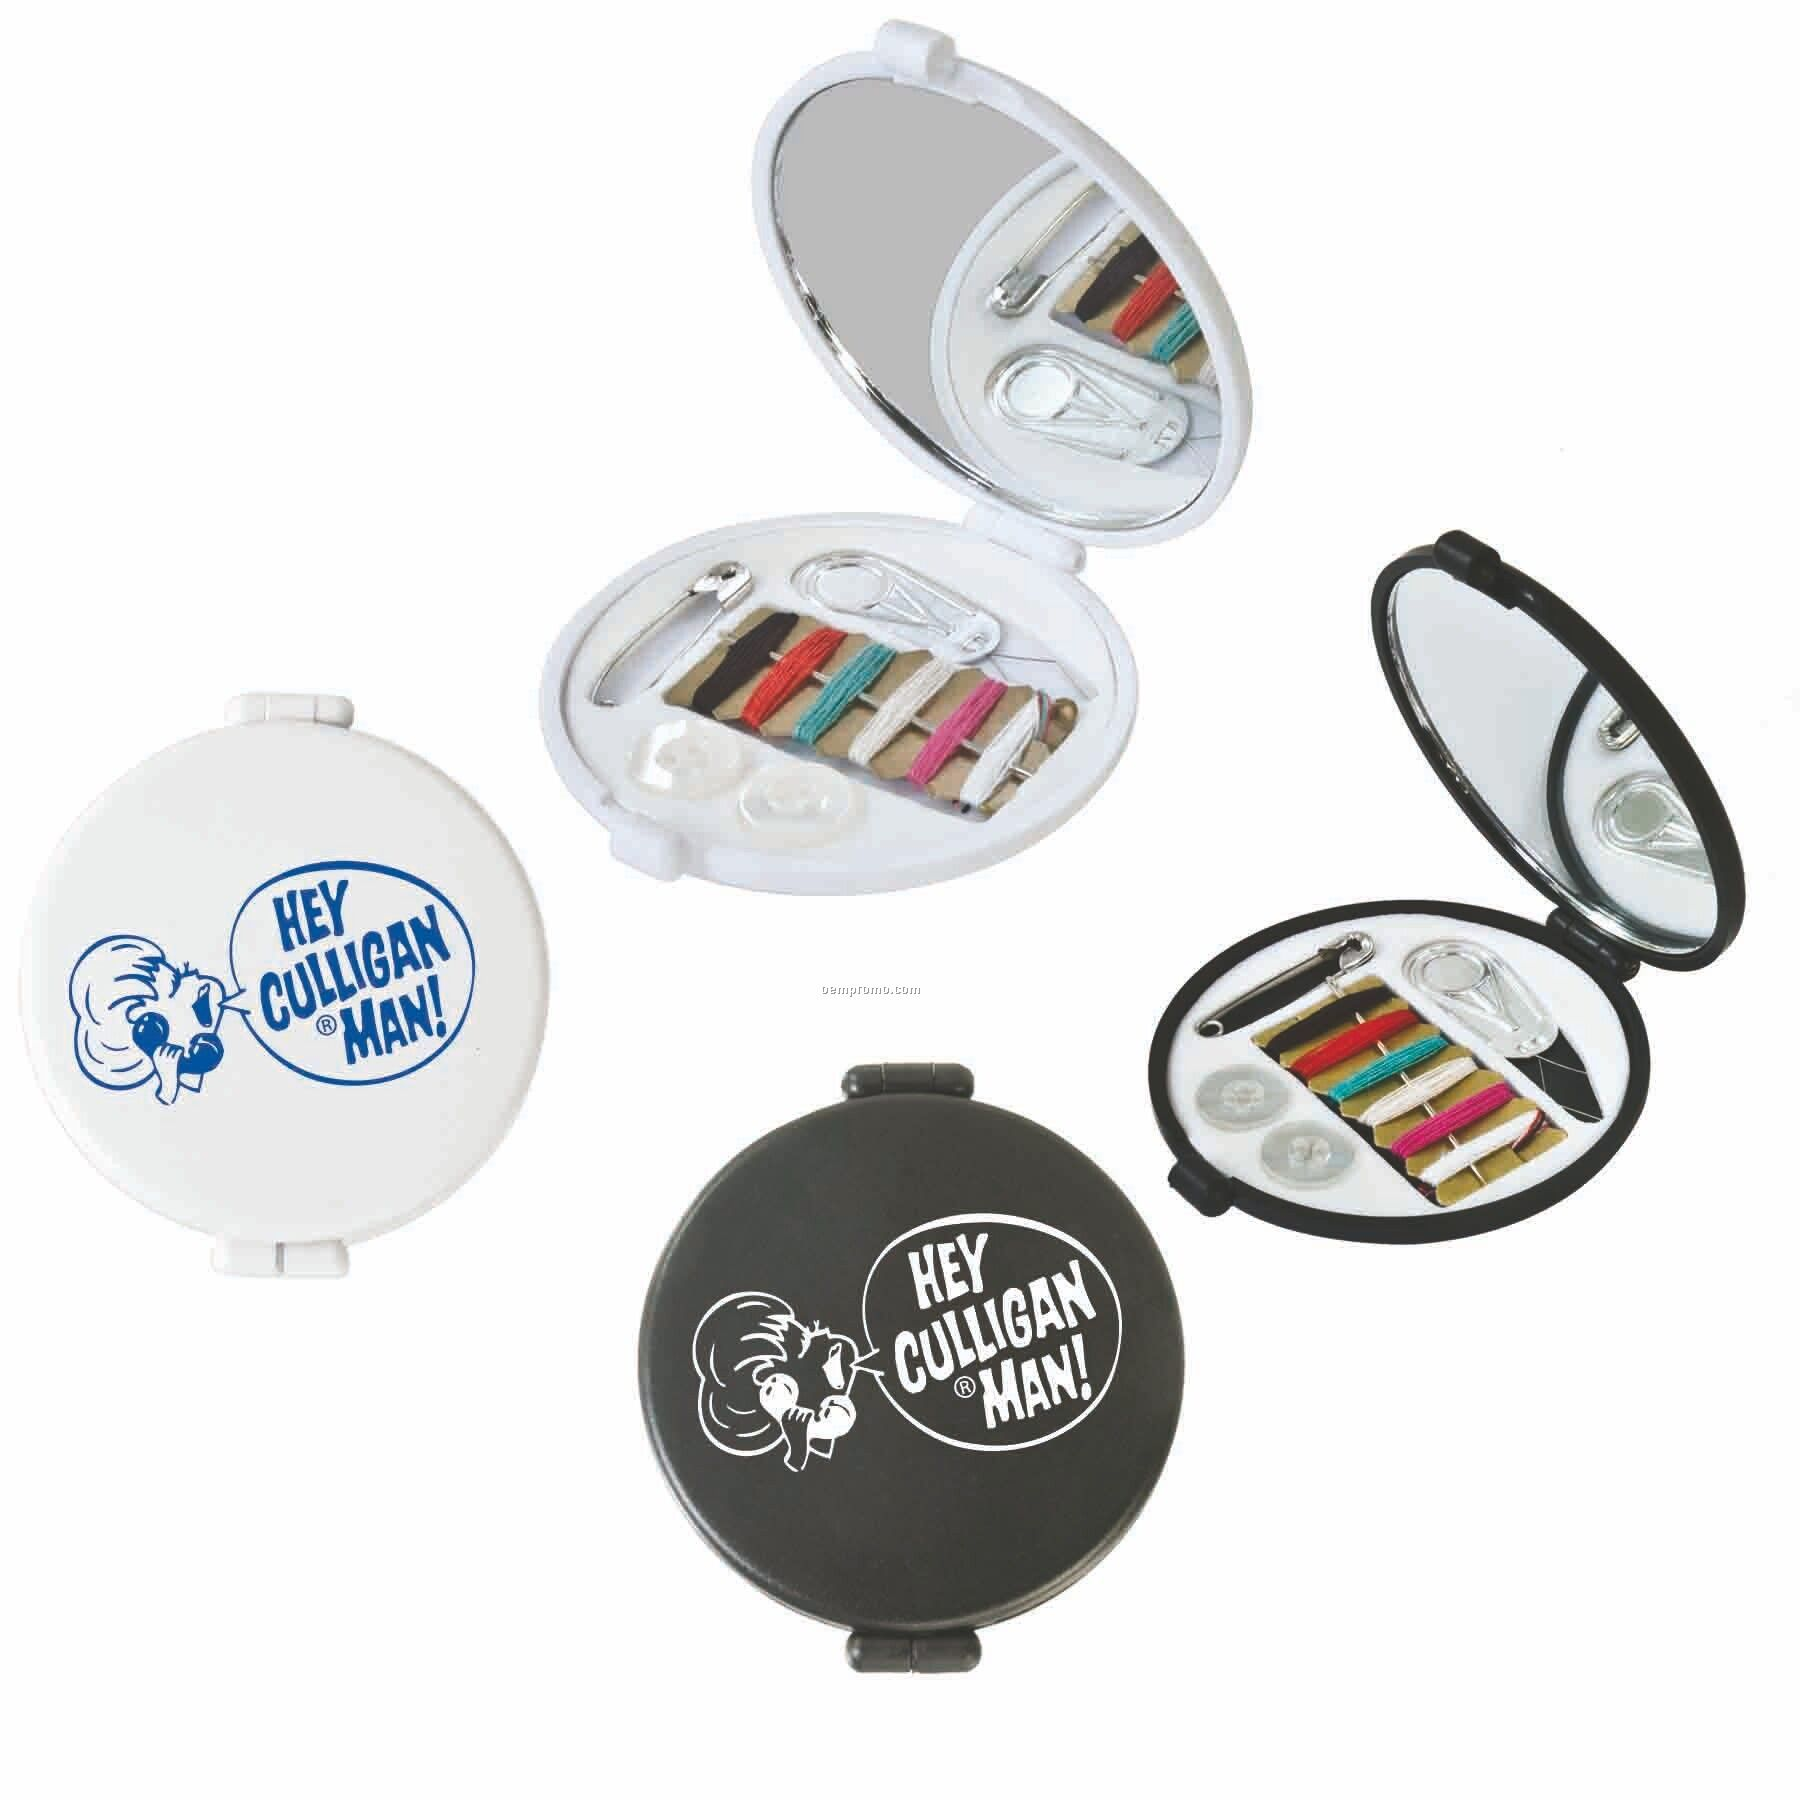 Compact Sewing Mirror